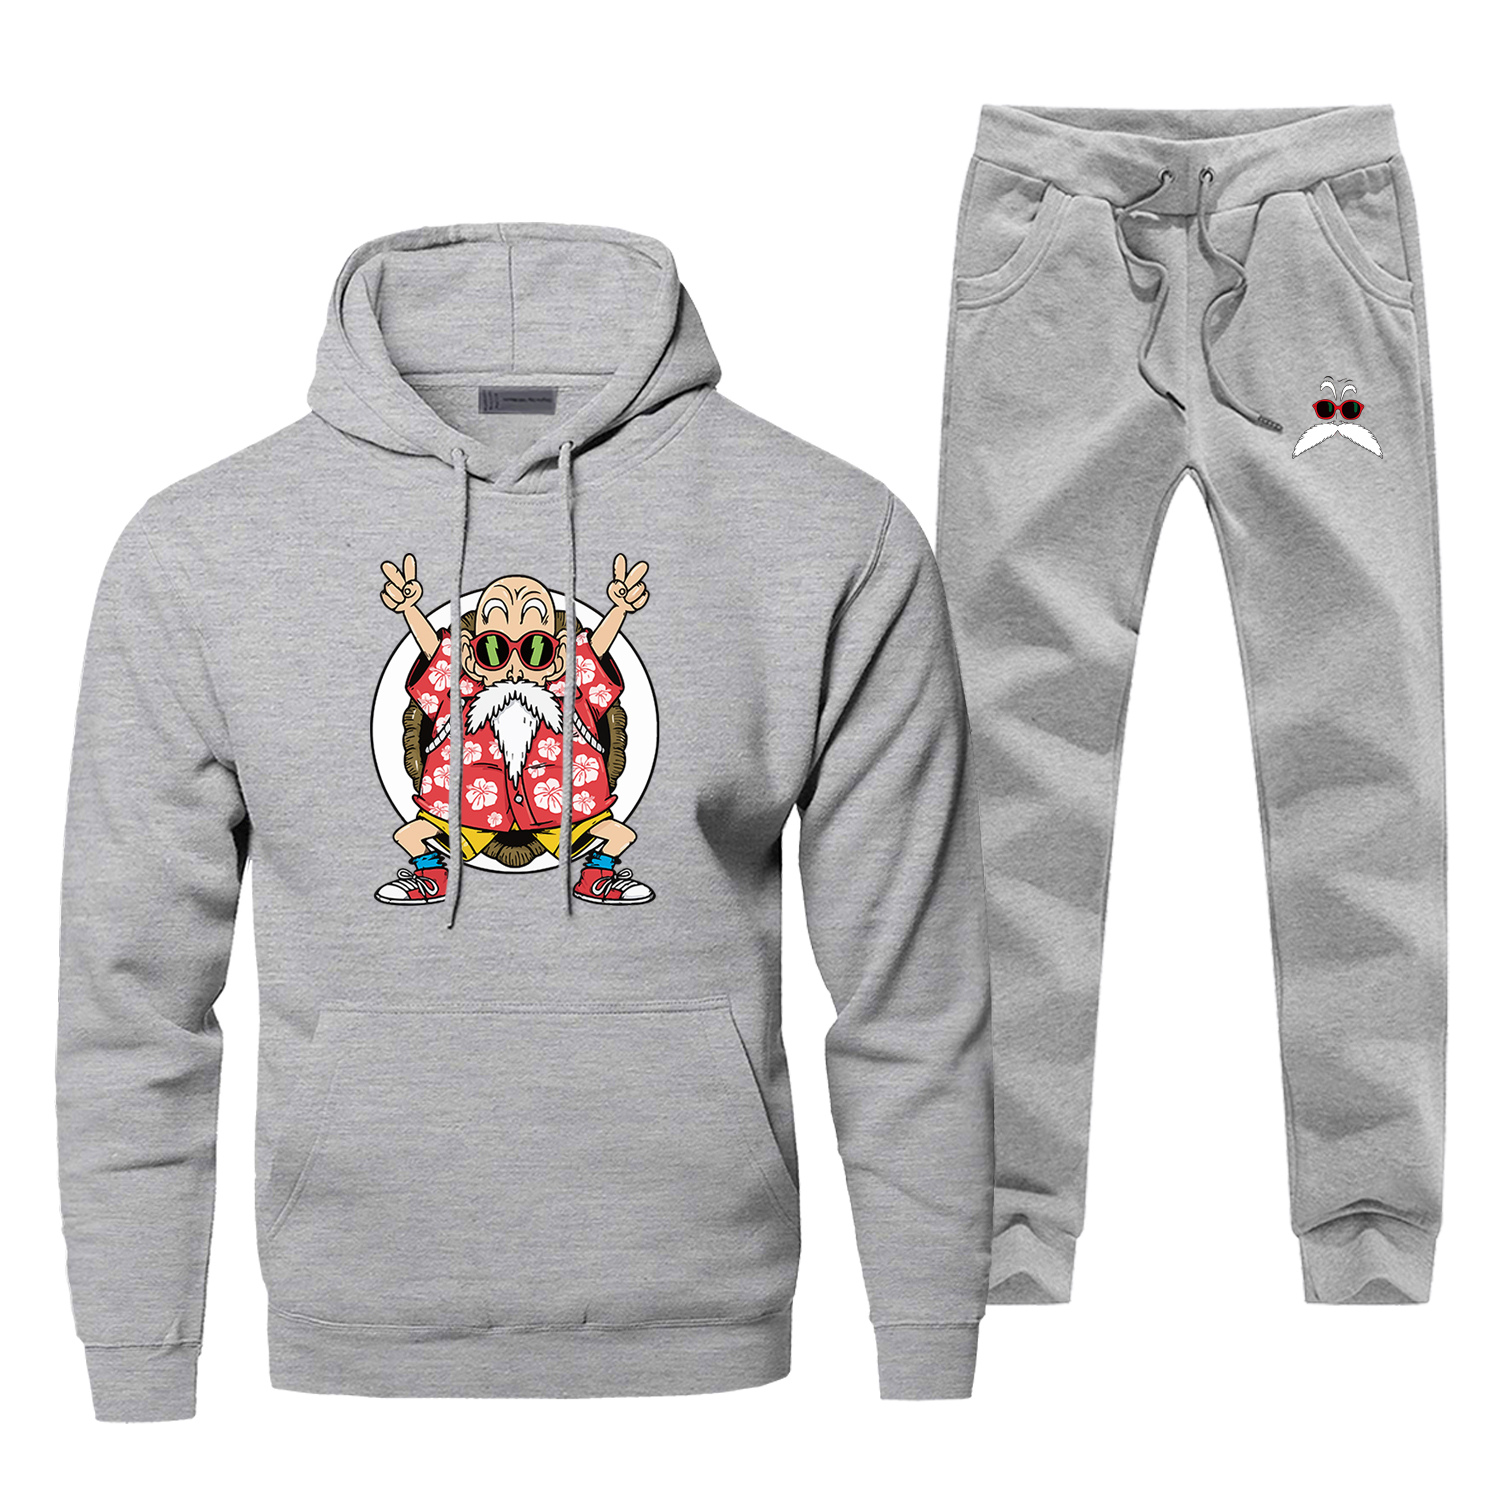 Dargon Ball Men Hoodie Male Pants Set Sweatshirt Master Roshi Mens Hoodies Sweatshirts Sets Two Piece Pant Pullover Funny Coat